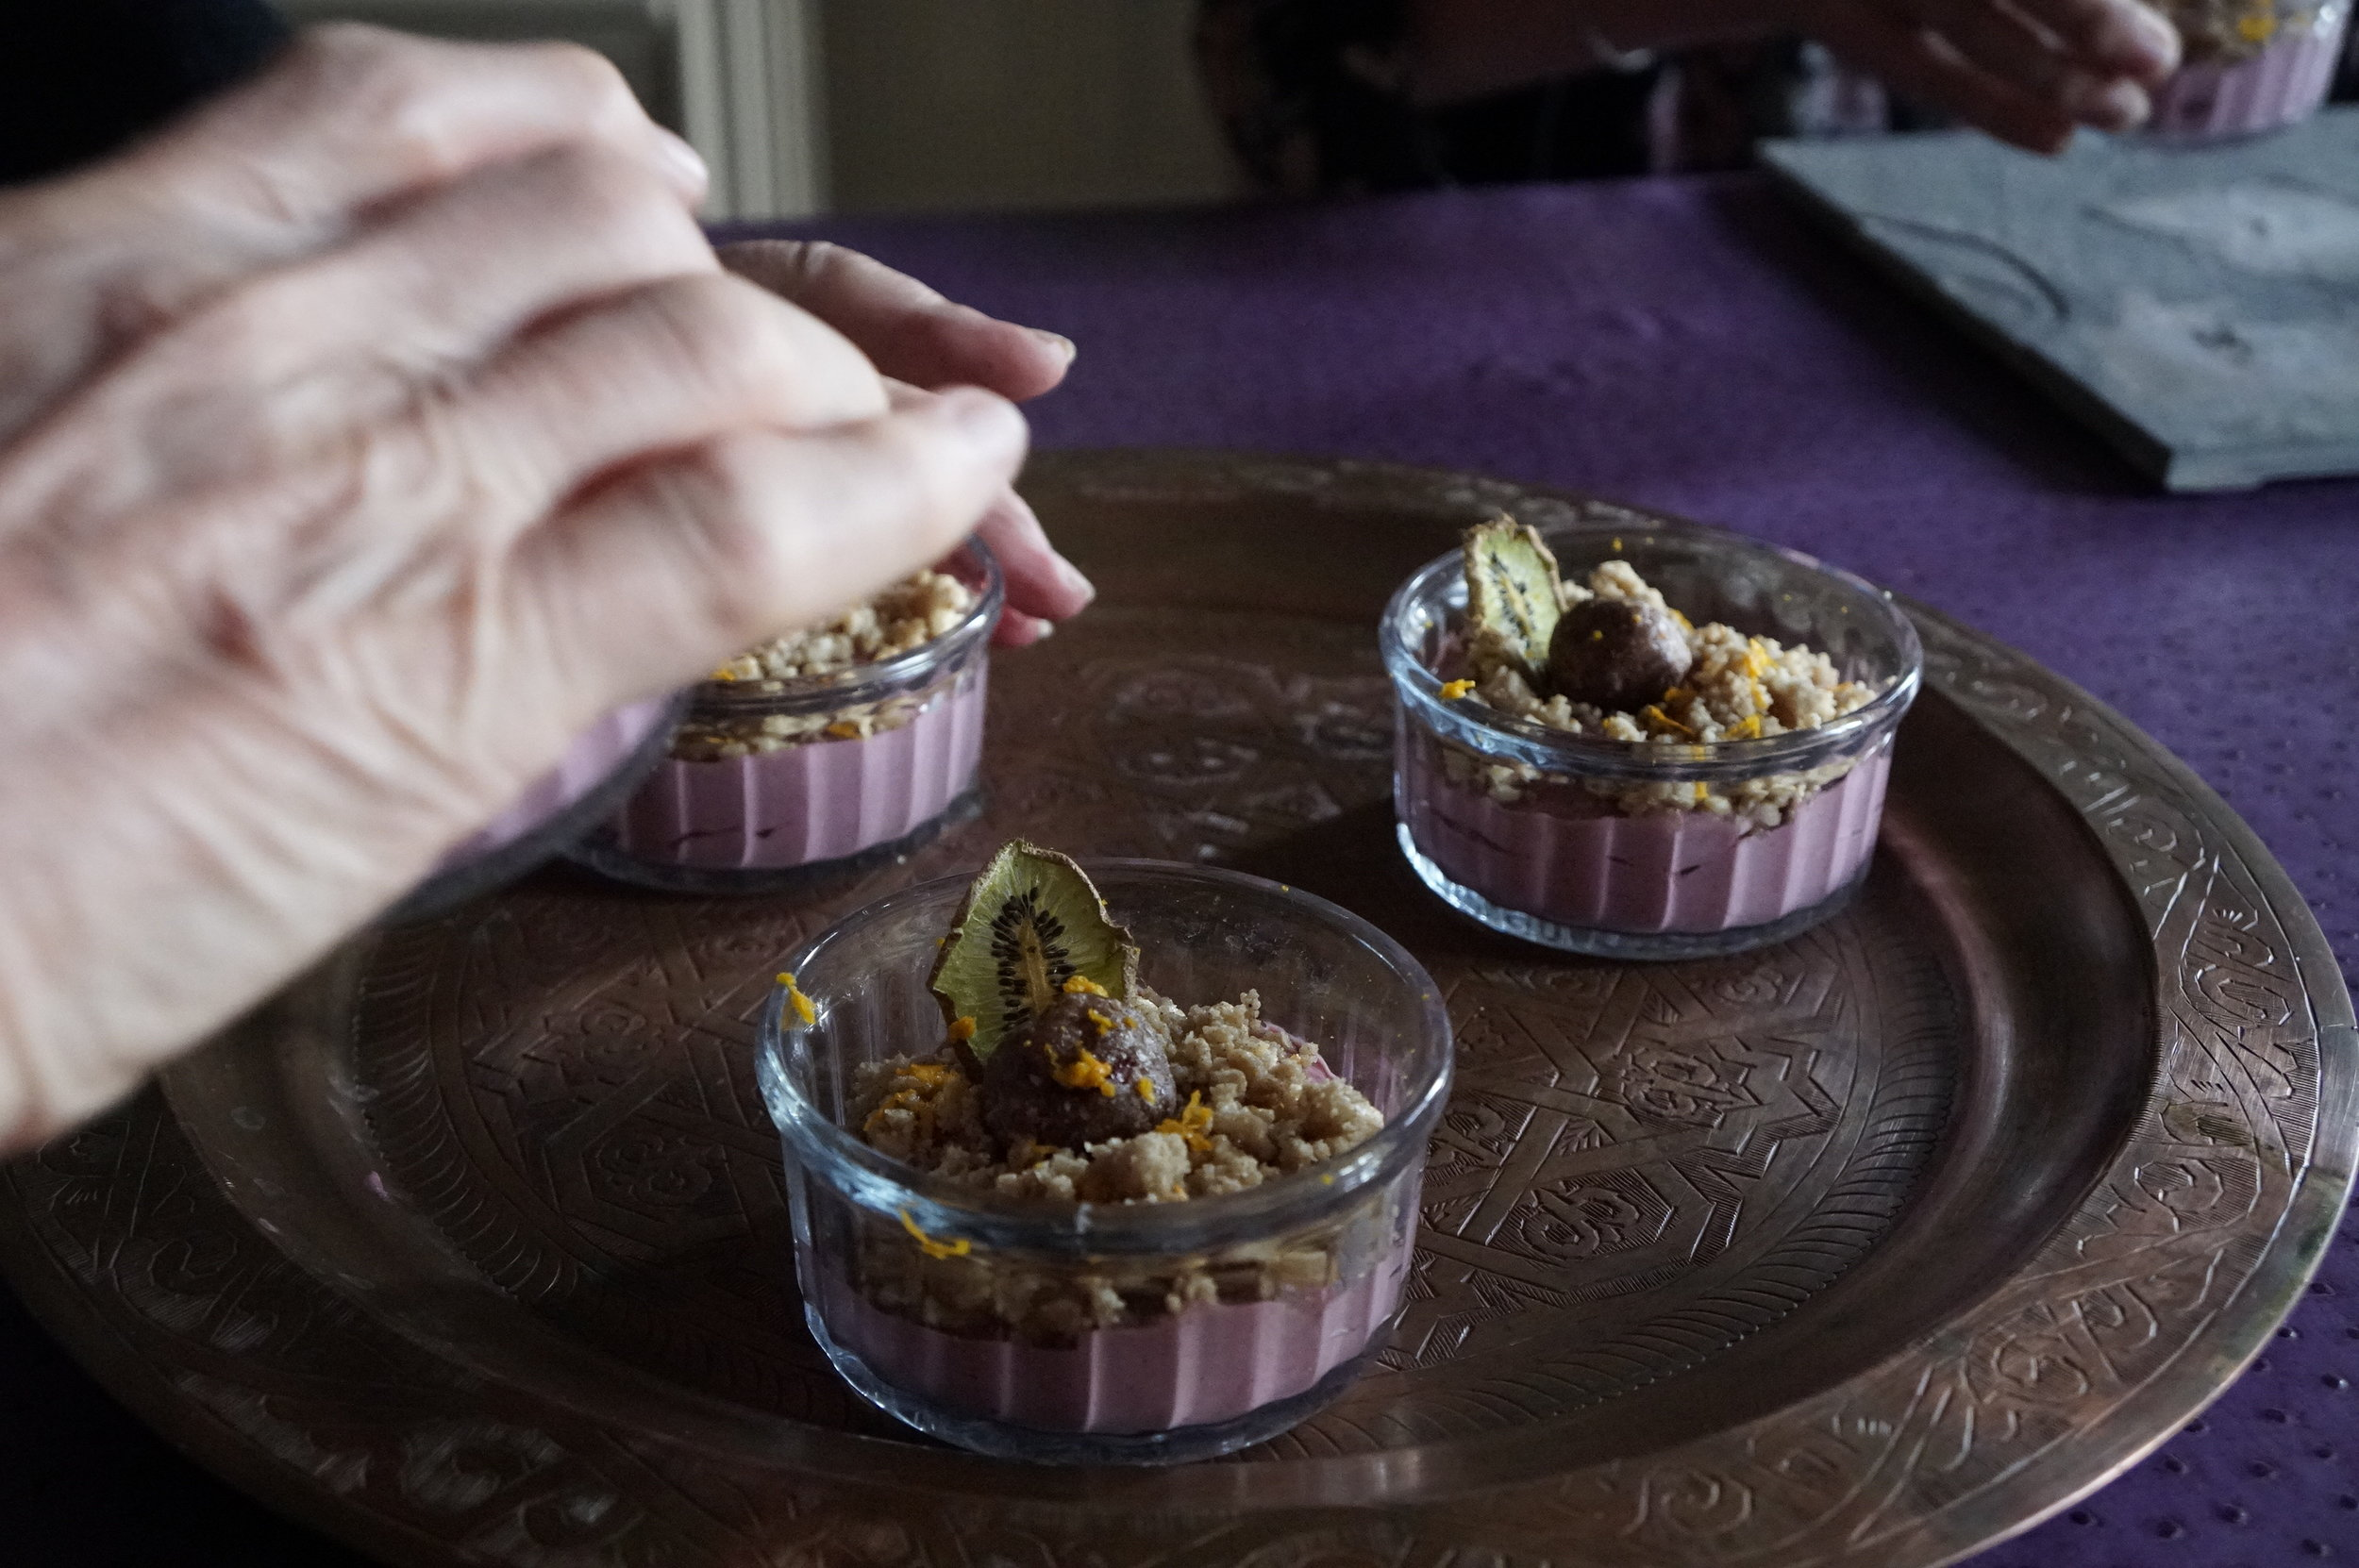 New to raw plant based deserts, free from sugar, dairy and wheat